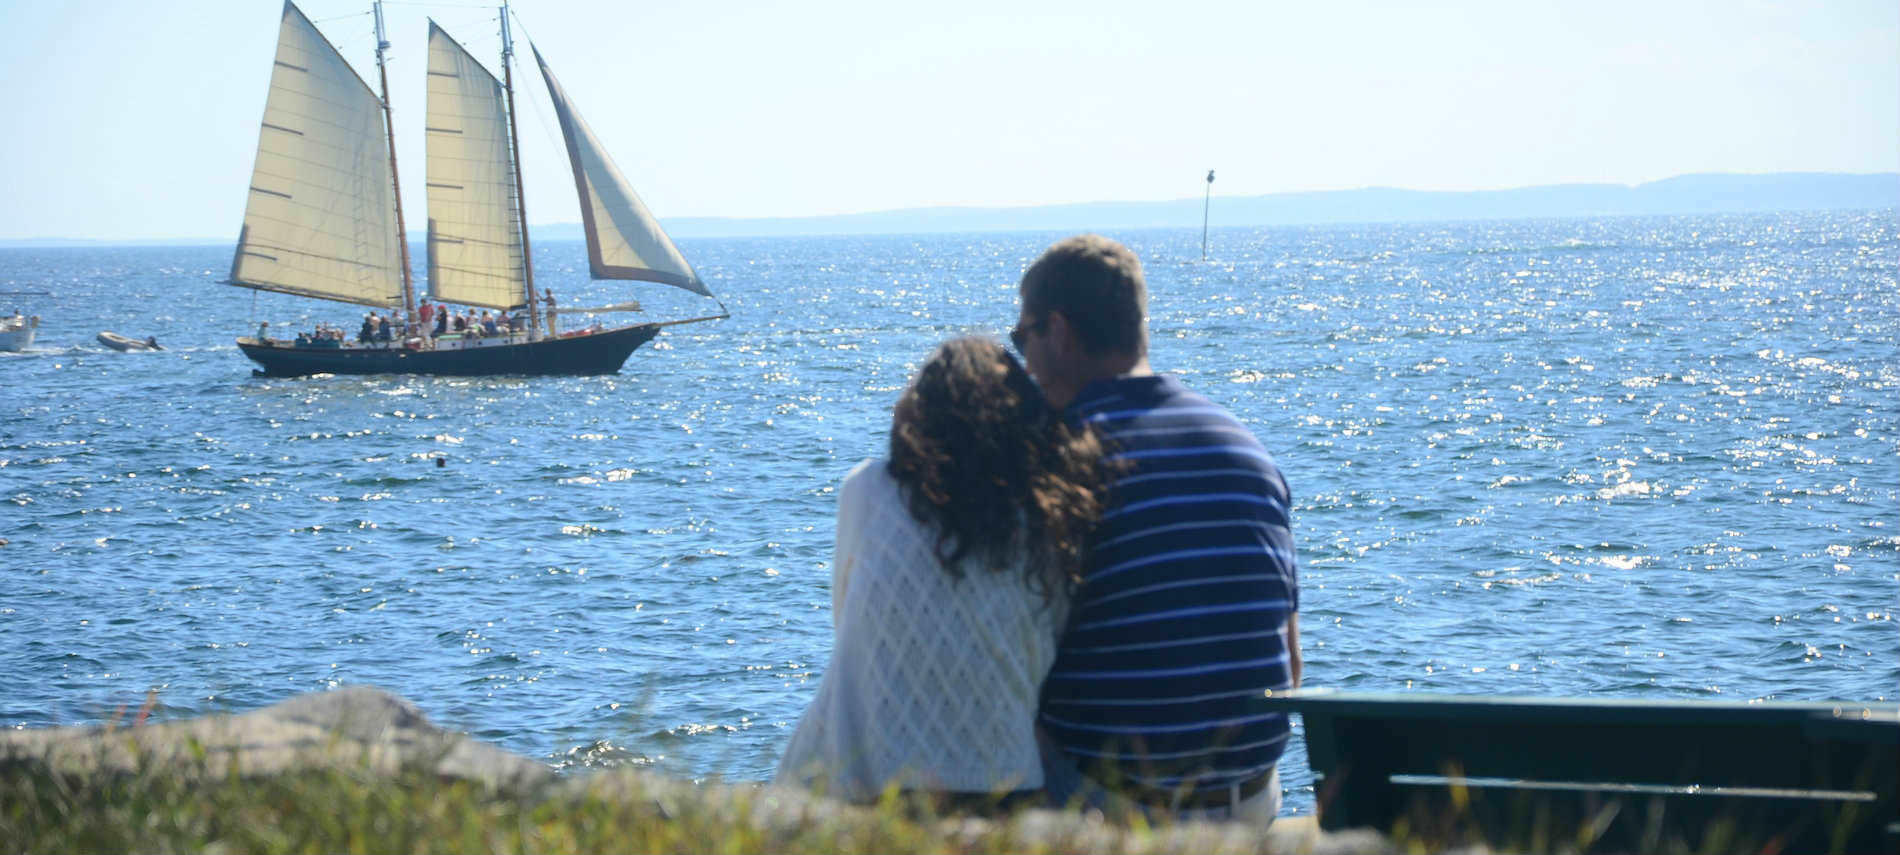 A couple sit close together on shore overlooking the sea and a white 3-sail boat.